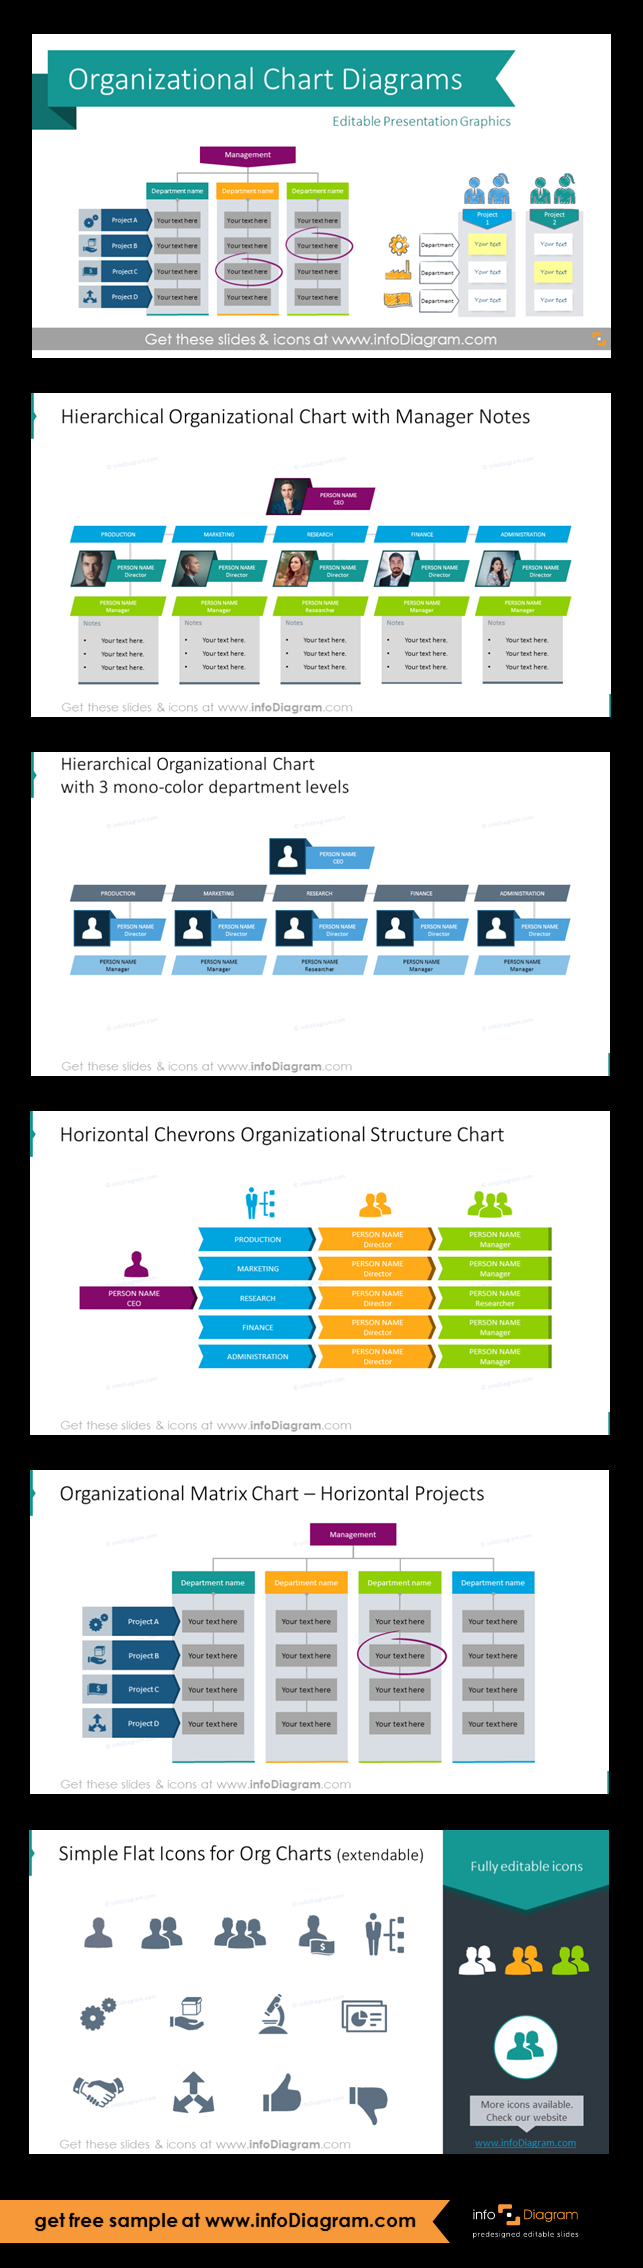 Company Organizational Structure Charts Ppt Diagrams Work Stuff